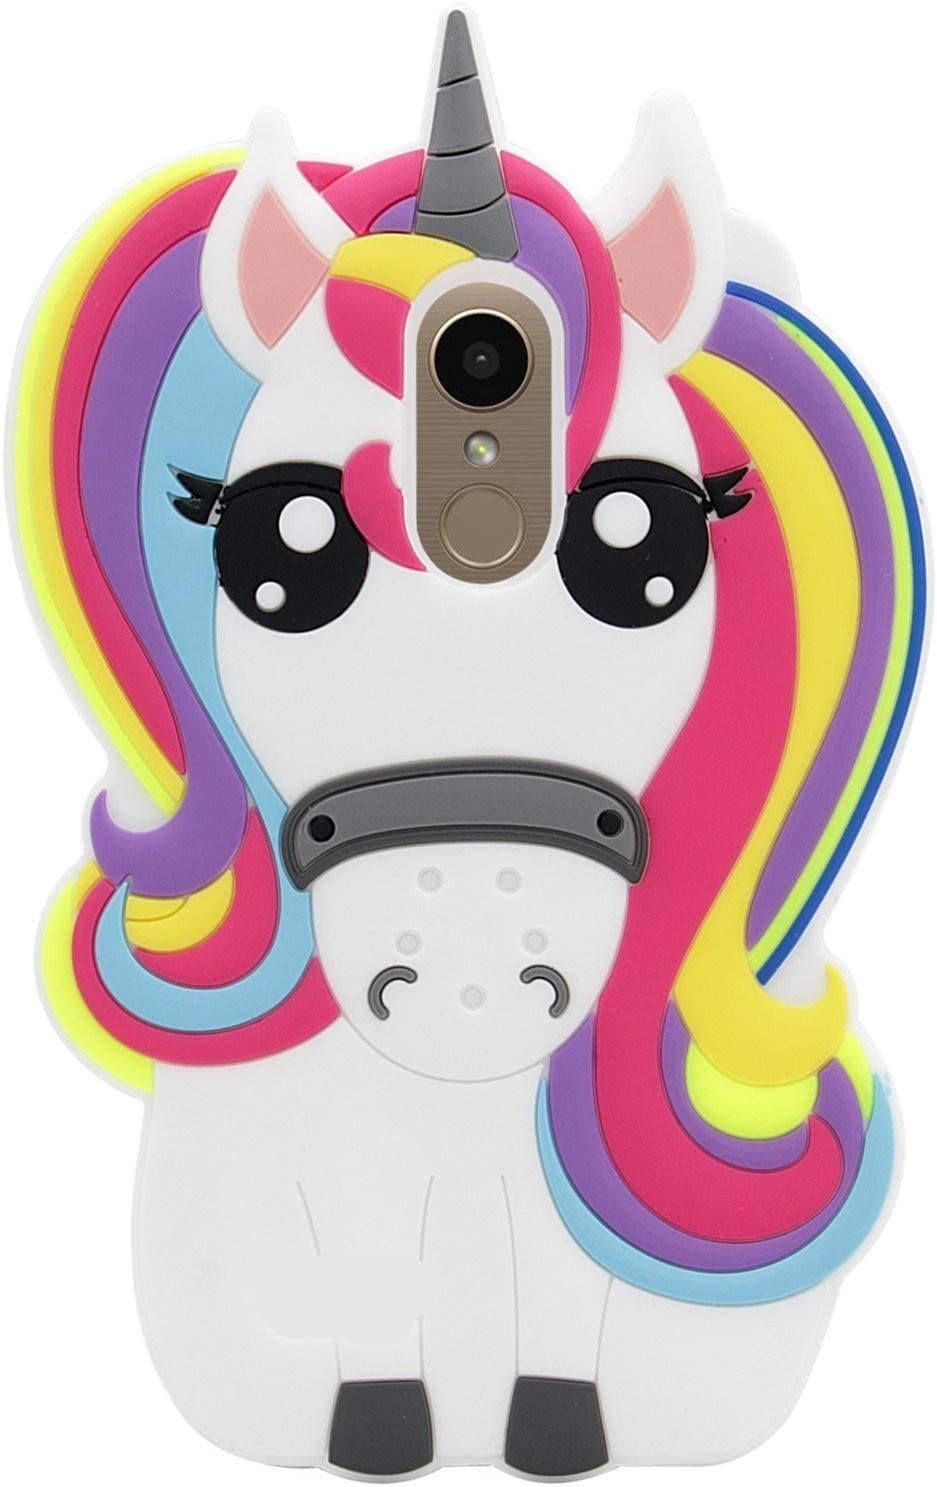 Joyleop Case for LG Stylo 4/LG Q Stylus,Cartoon Soft Silicone Cute 3D Fun Cool Cover,Kawaii Unique Kids Girls Animal Character Rubber Skin Shockproof Protector Cases for LG Stylo 4Plus Rainbow Unicorn